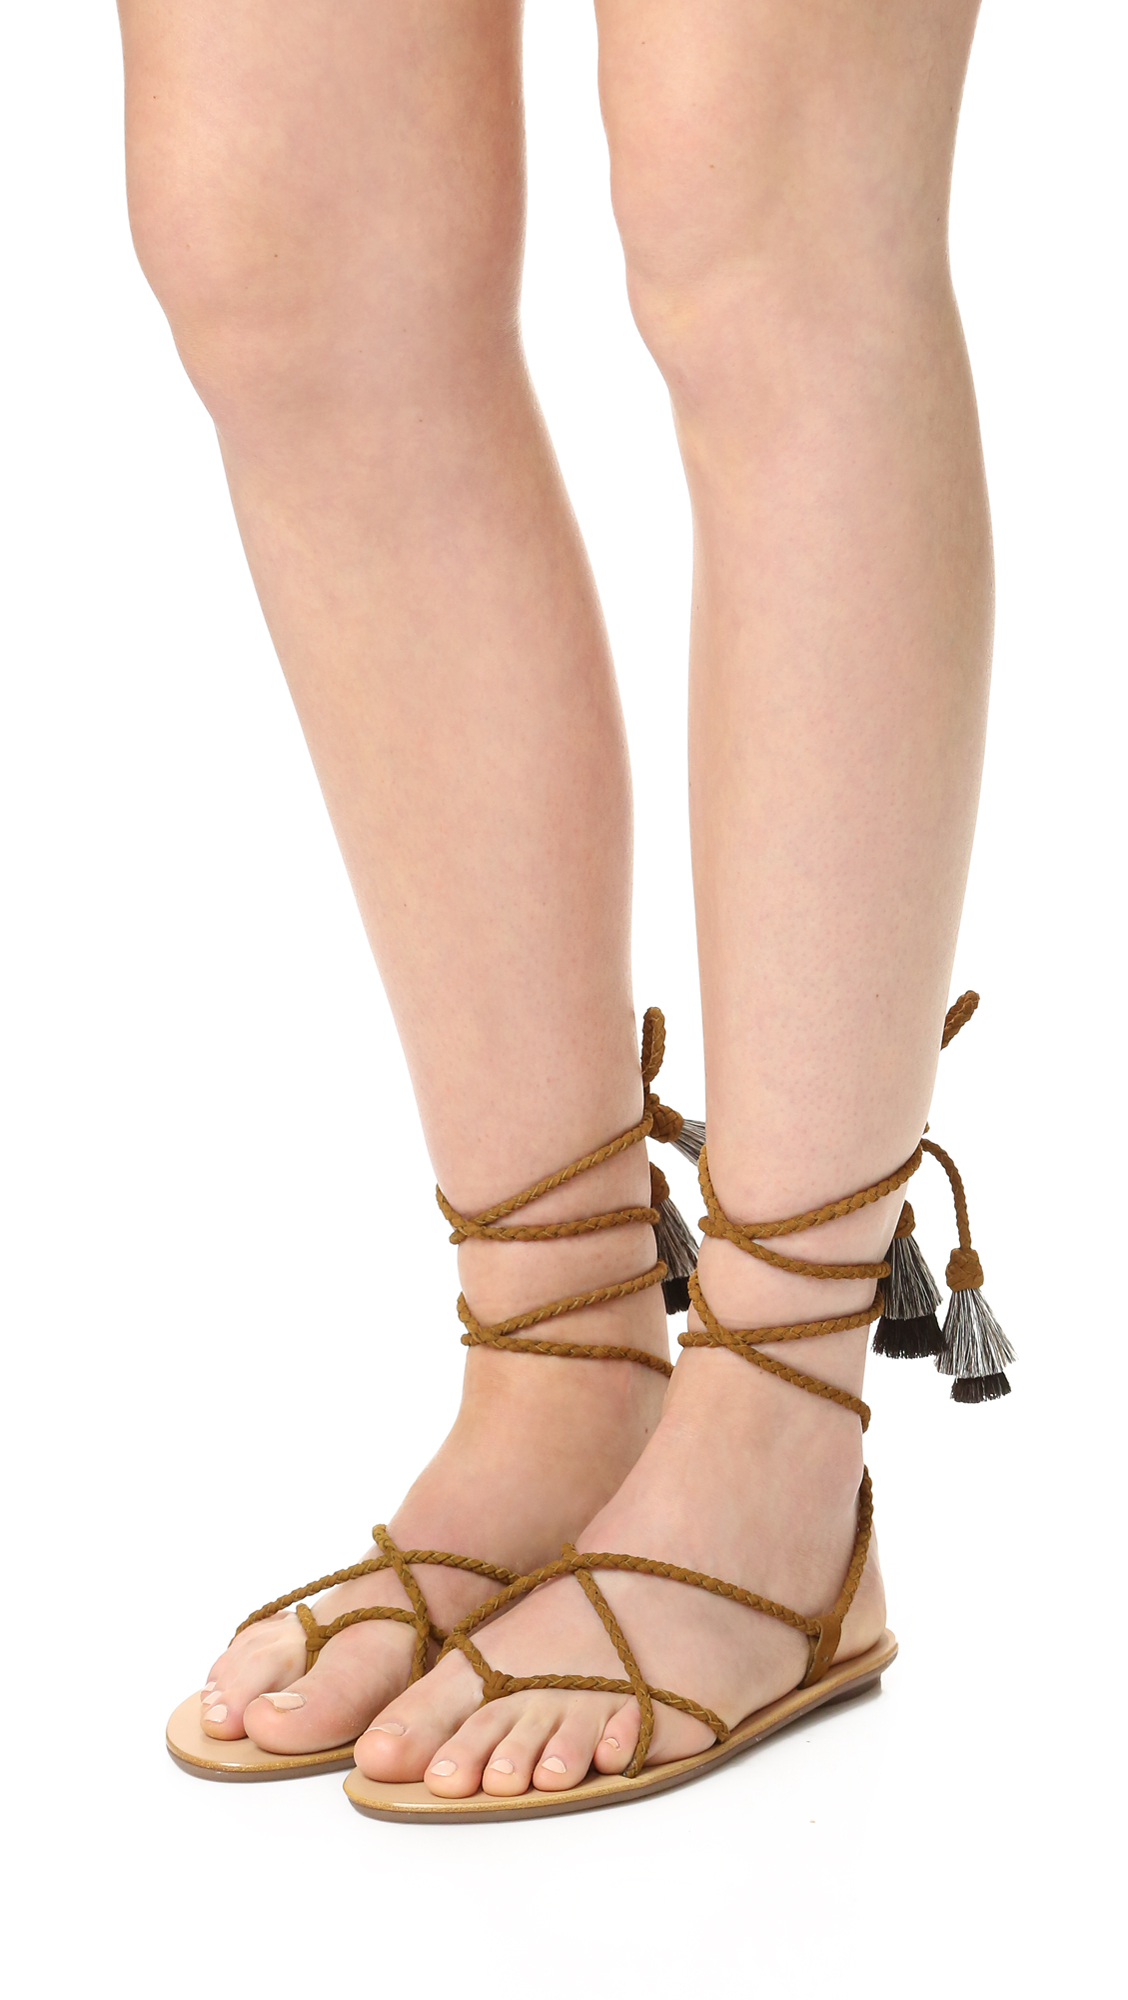 free shipping Inexpensive buy cheap 2014 unisex Loeffler Randall Leather Wrap-Around Sandals authentic online yxsdK